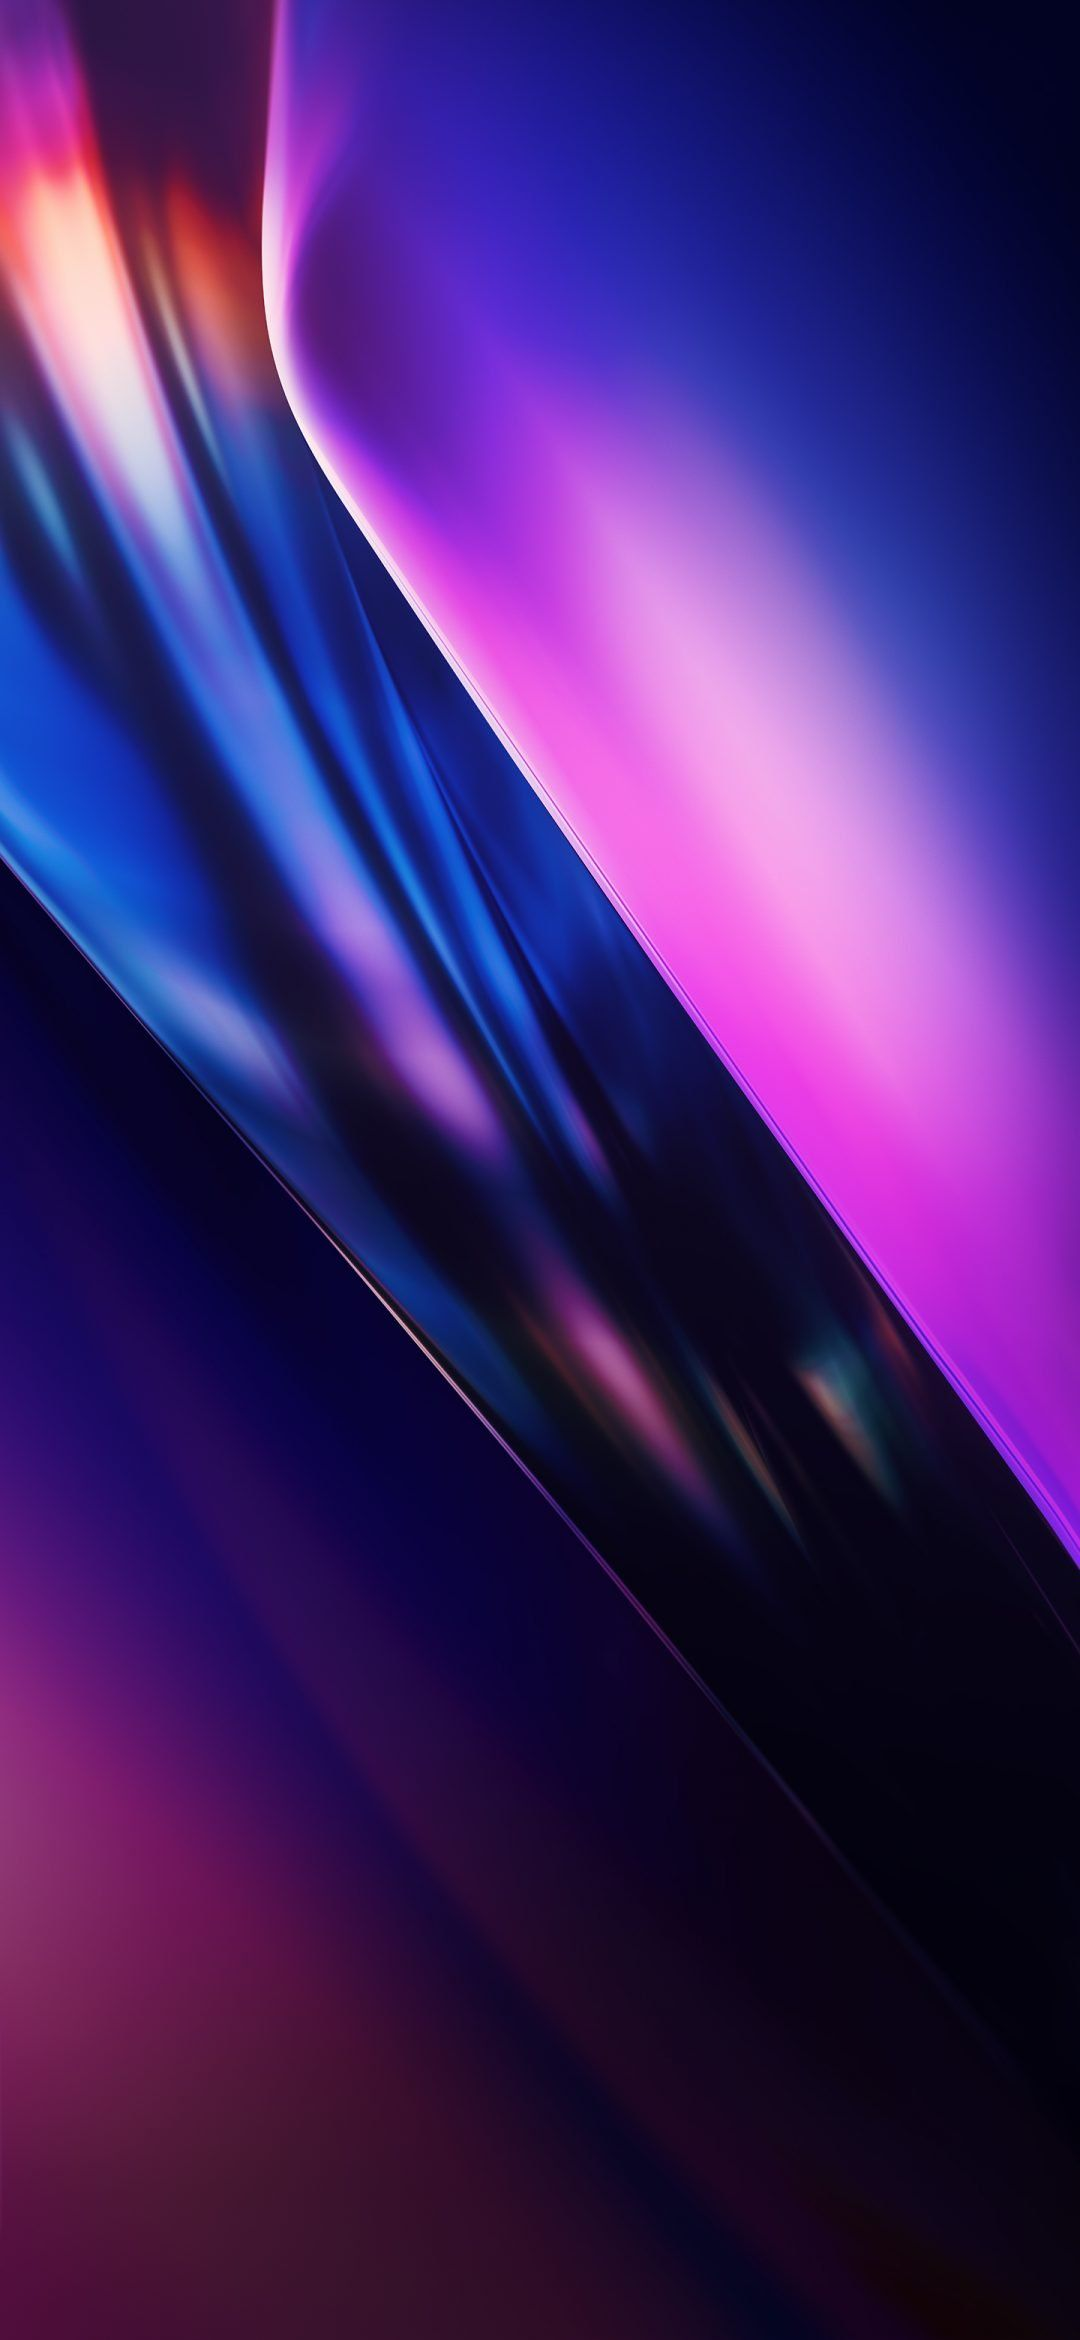 Oneplus 7t Wallpapers Live Wallpapers 4k Never Settle Droidviews Oneplus Wallpapers Stock Wallpaper Samsung Wallpaper